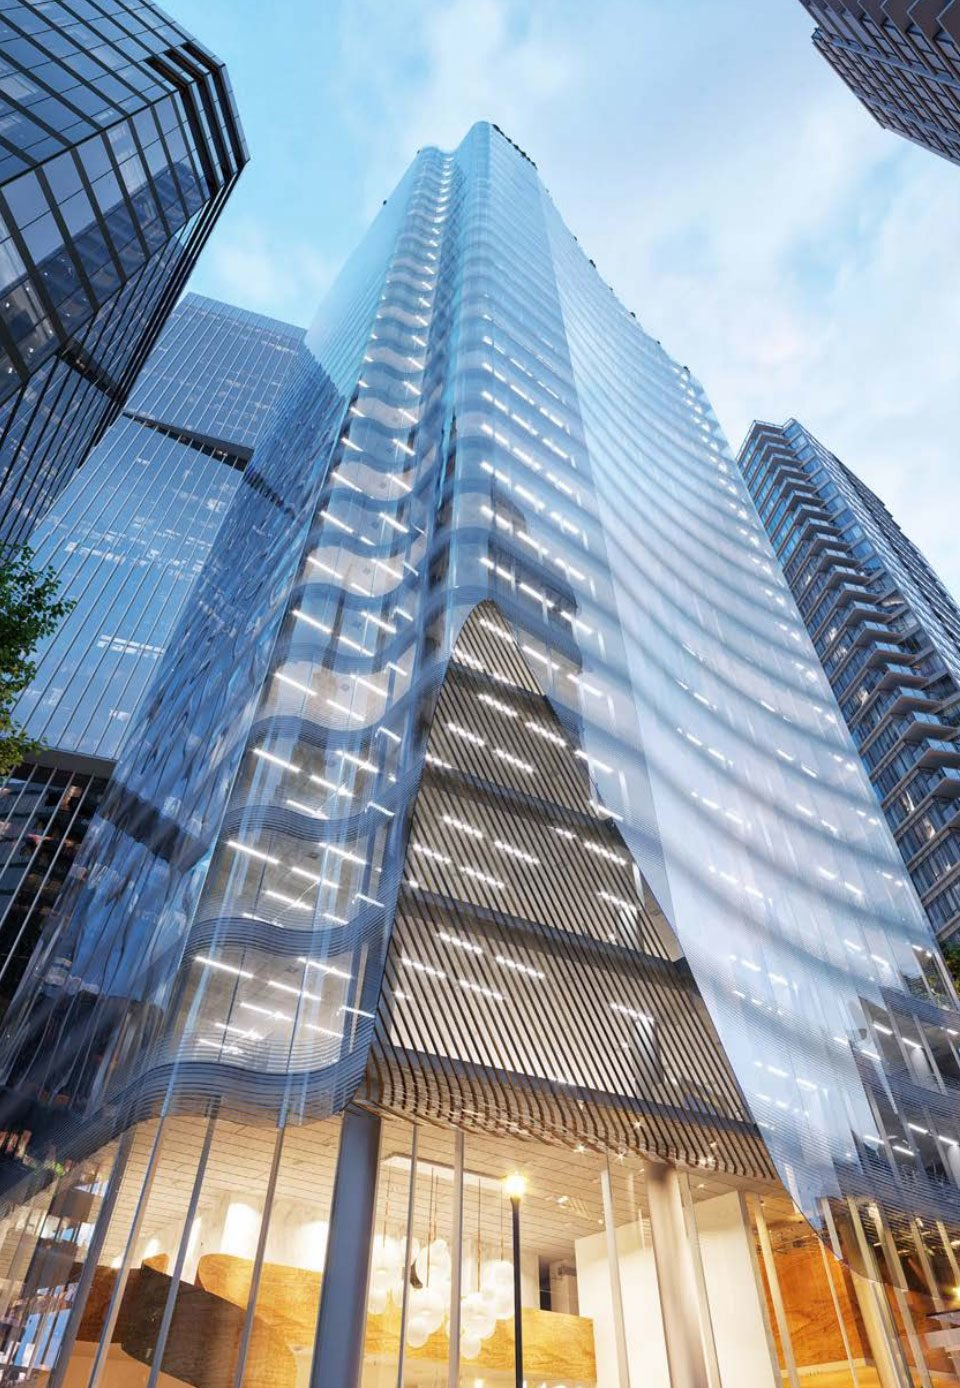 1166 West Pender tower form